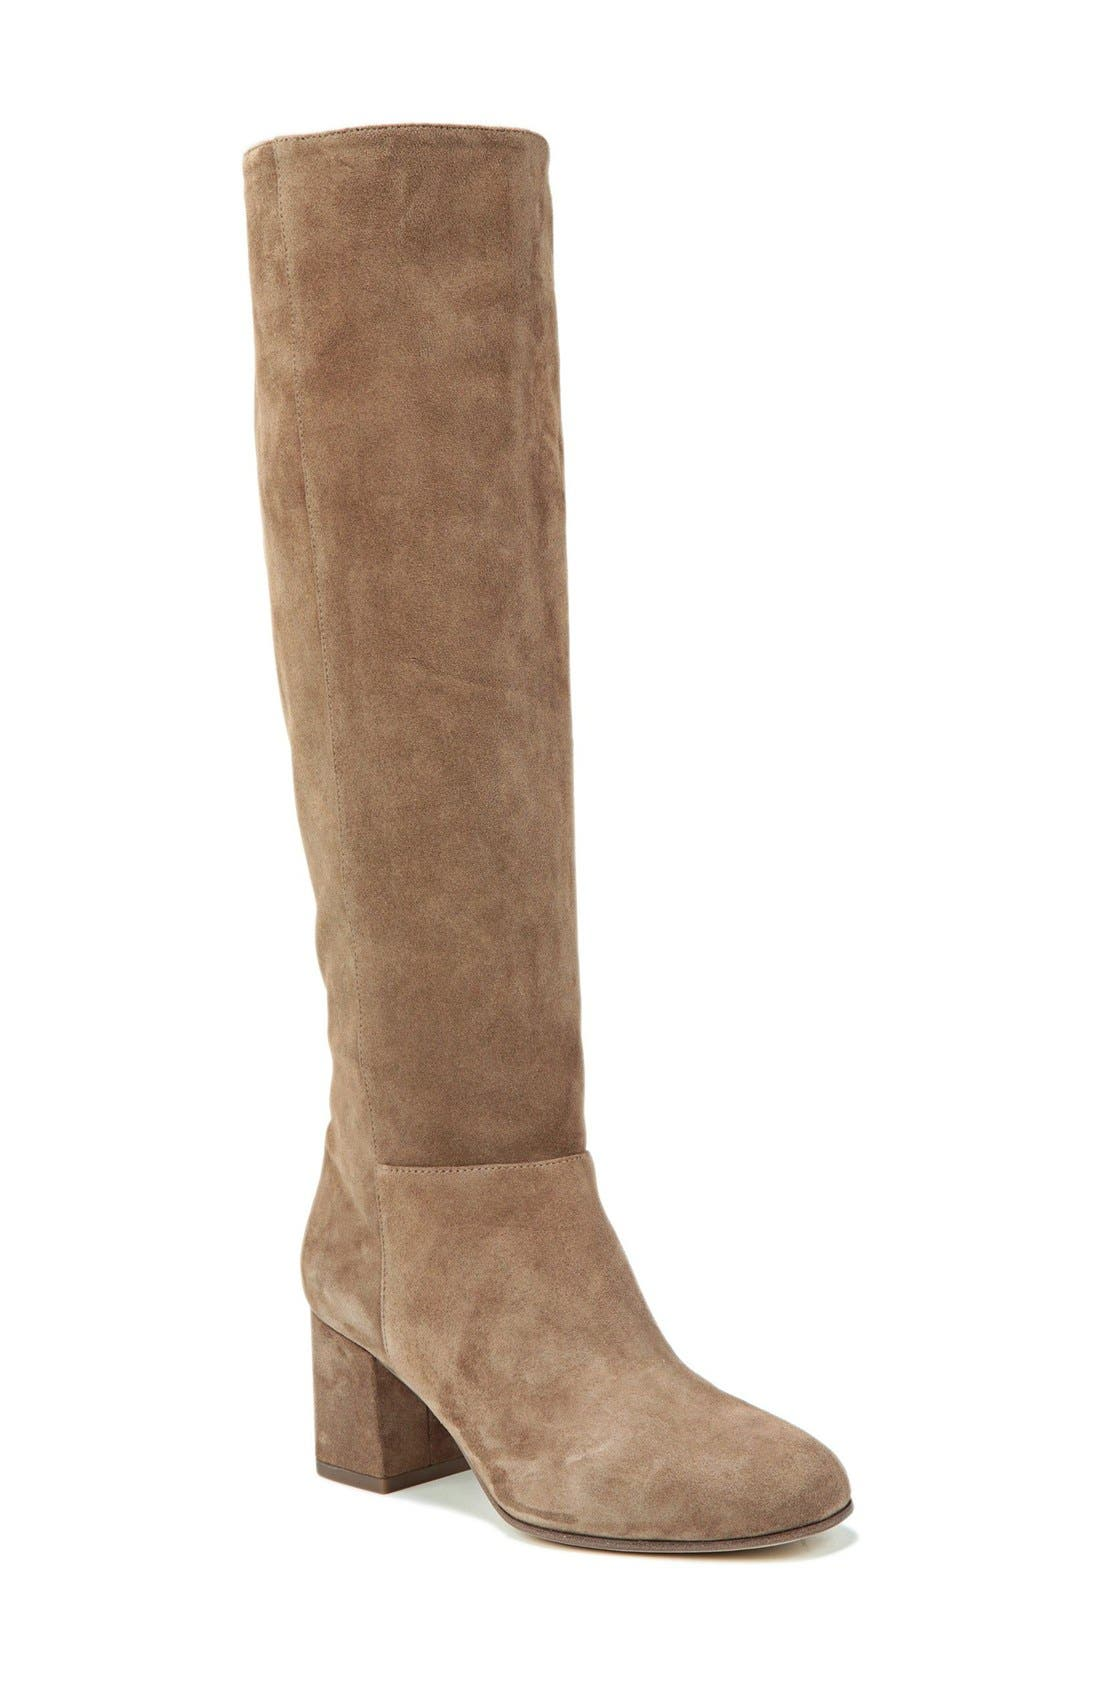 Main Image - Via Spiga Mellie Knee High Boot (Women)